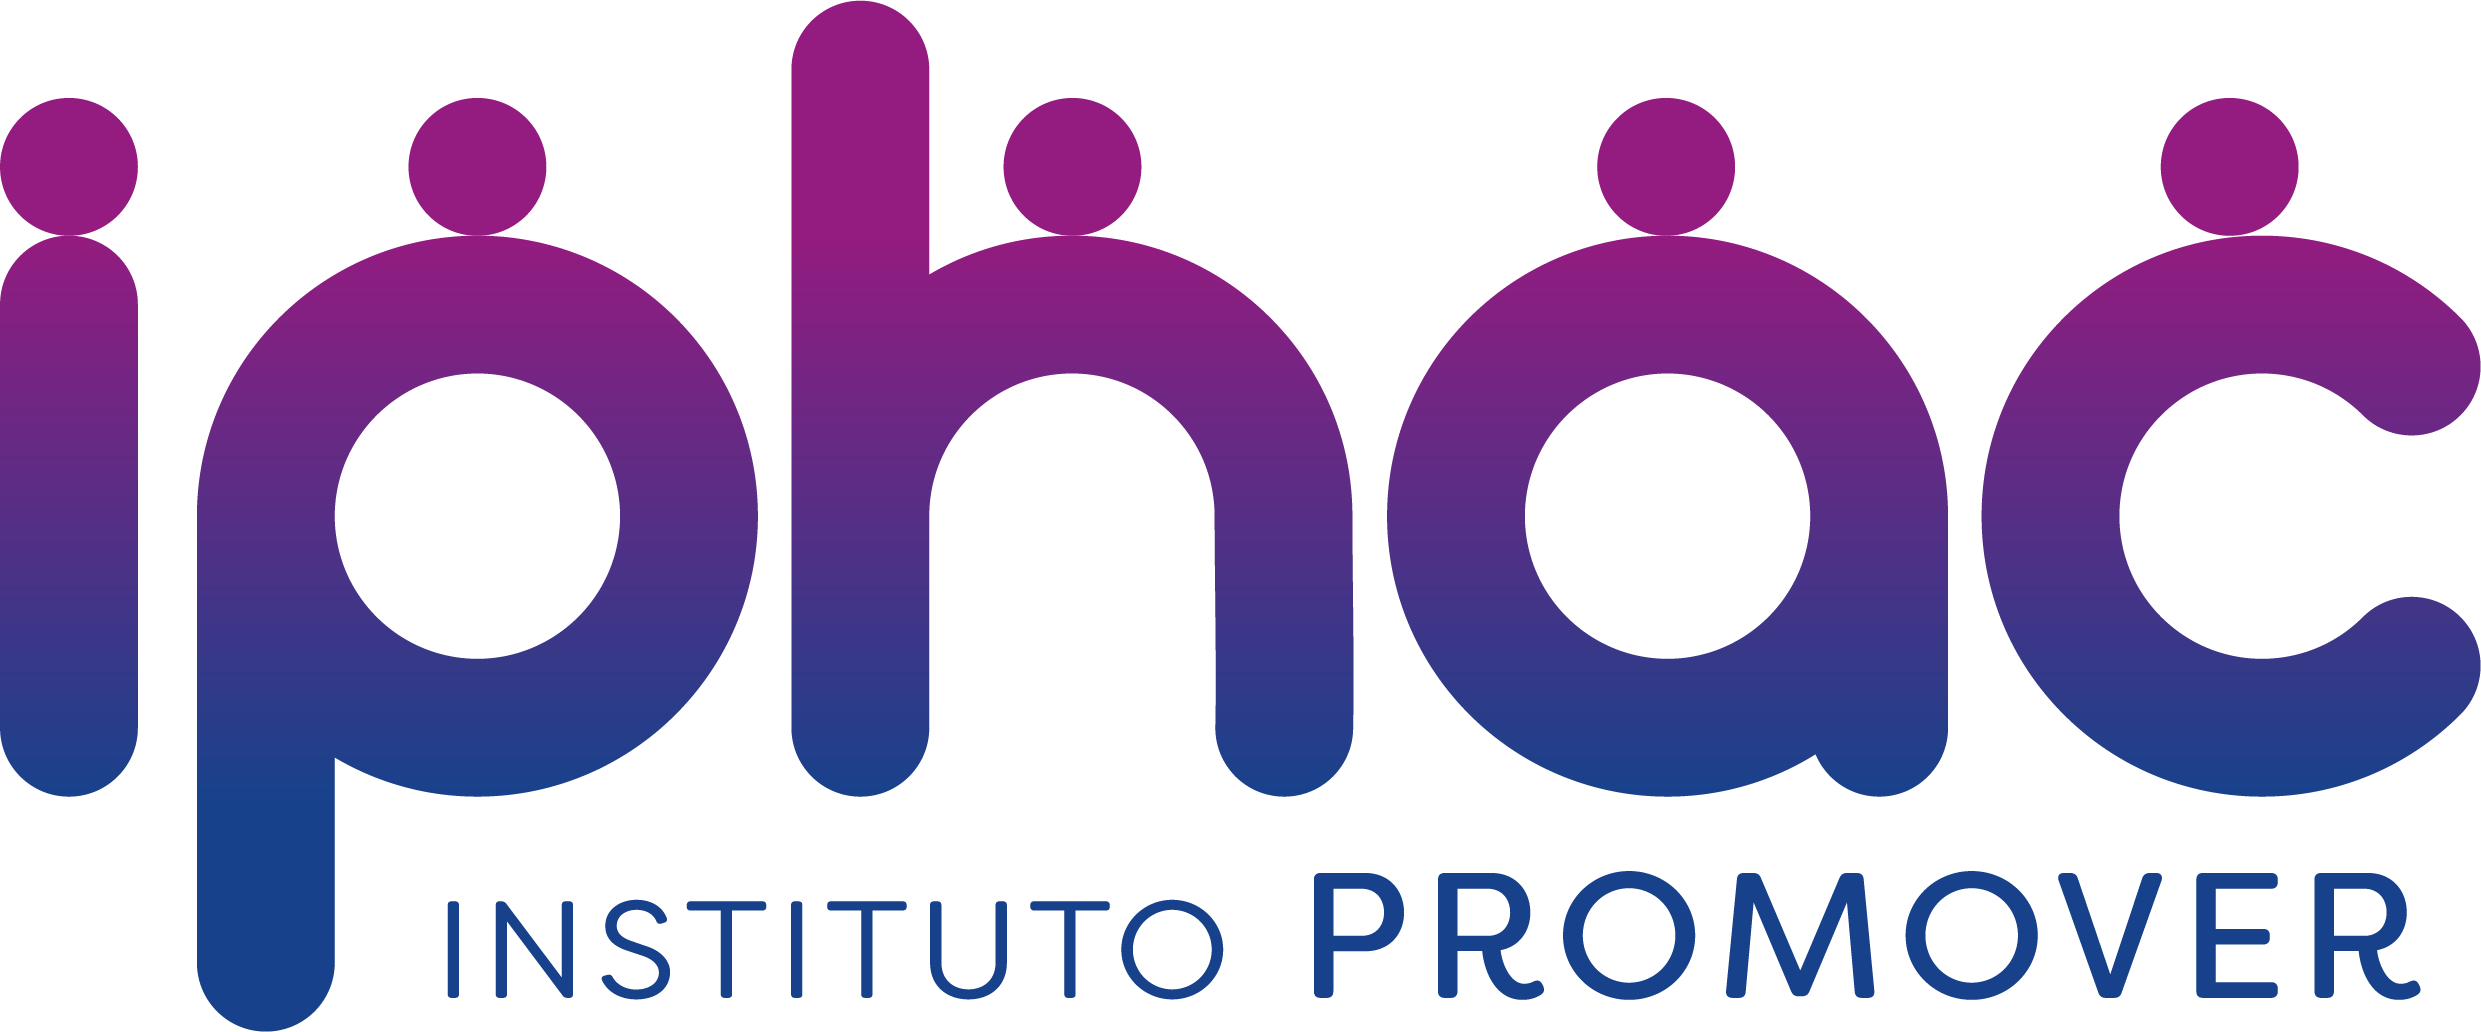 Logotipo Iphac 2019_Original